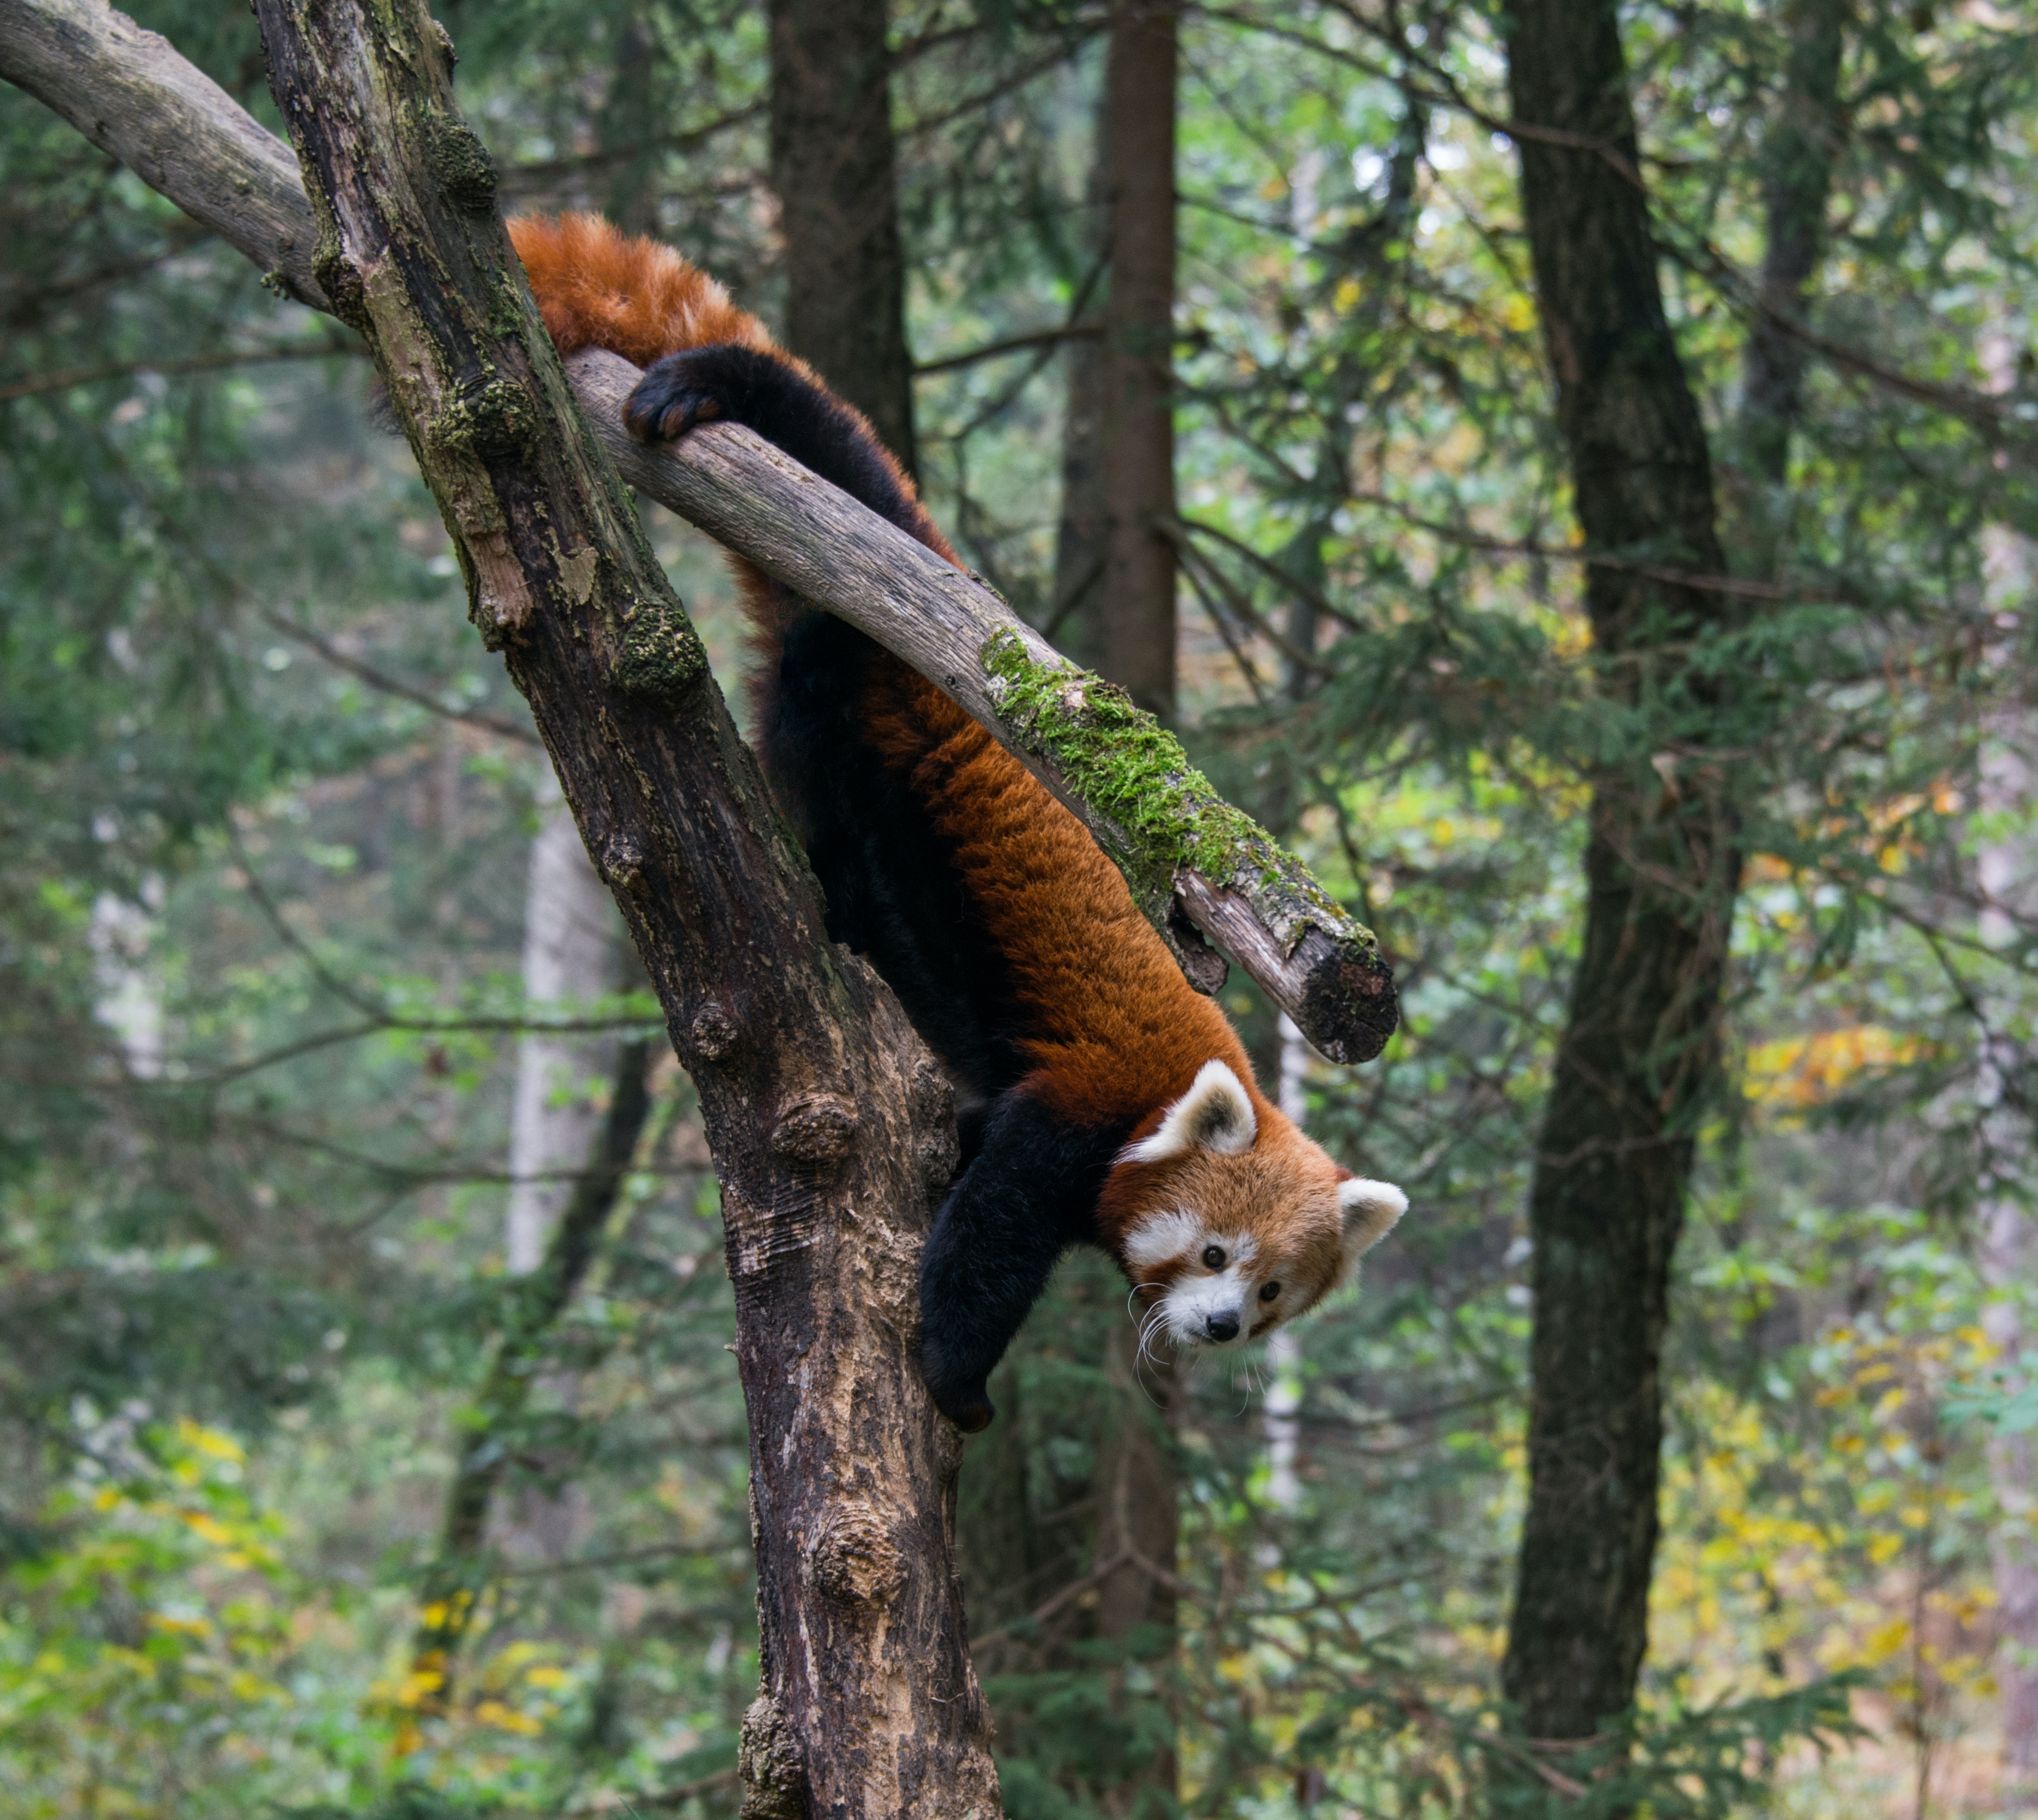 A red panda climbing down a mossy tree trunk